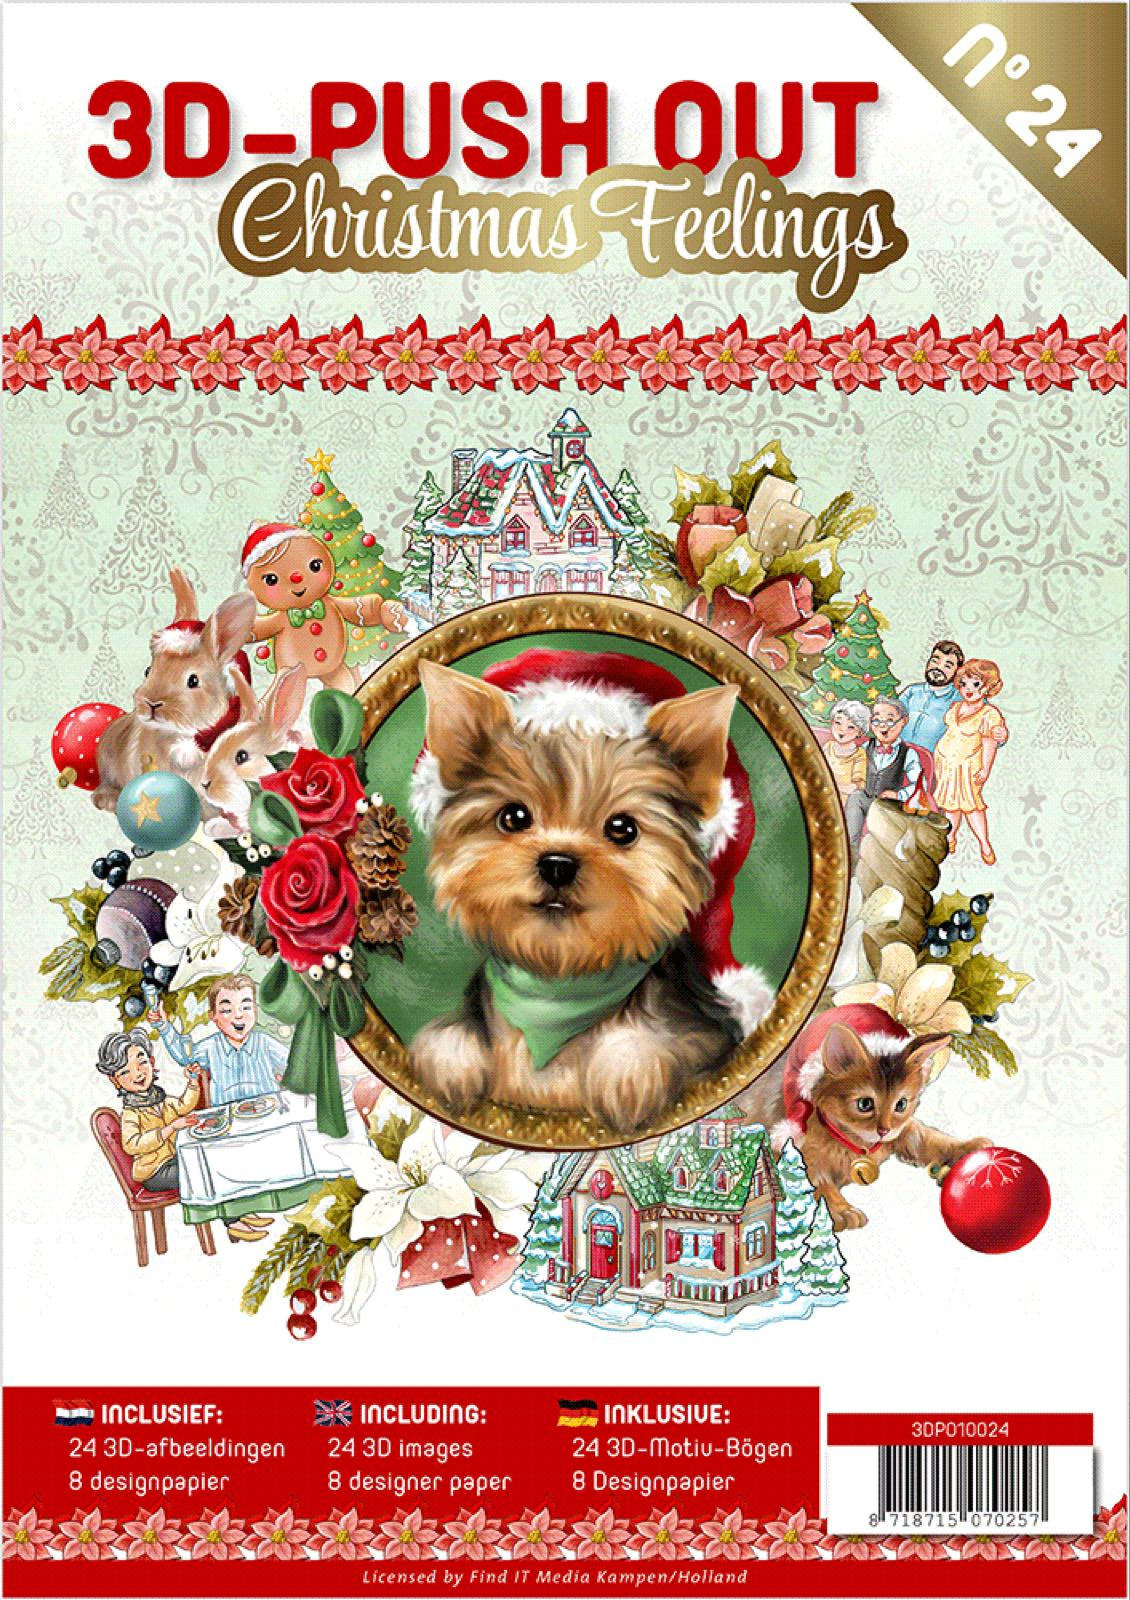 3D-push out bok christmas feelings 24 3D motiver